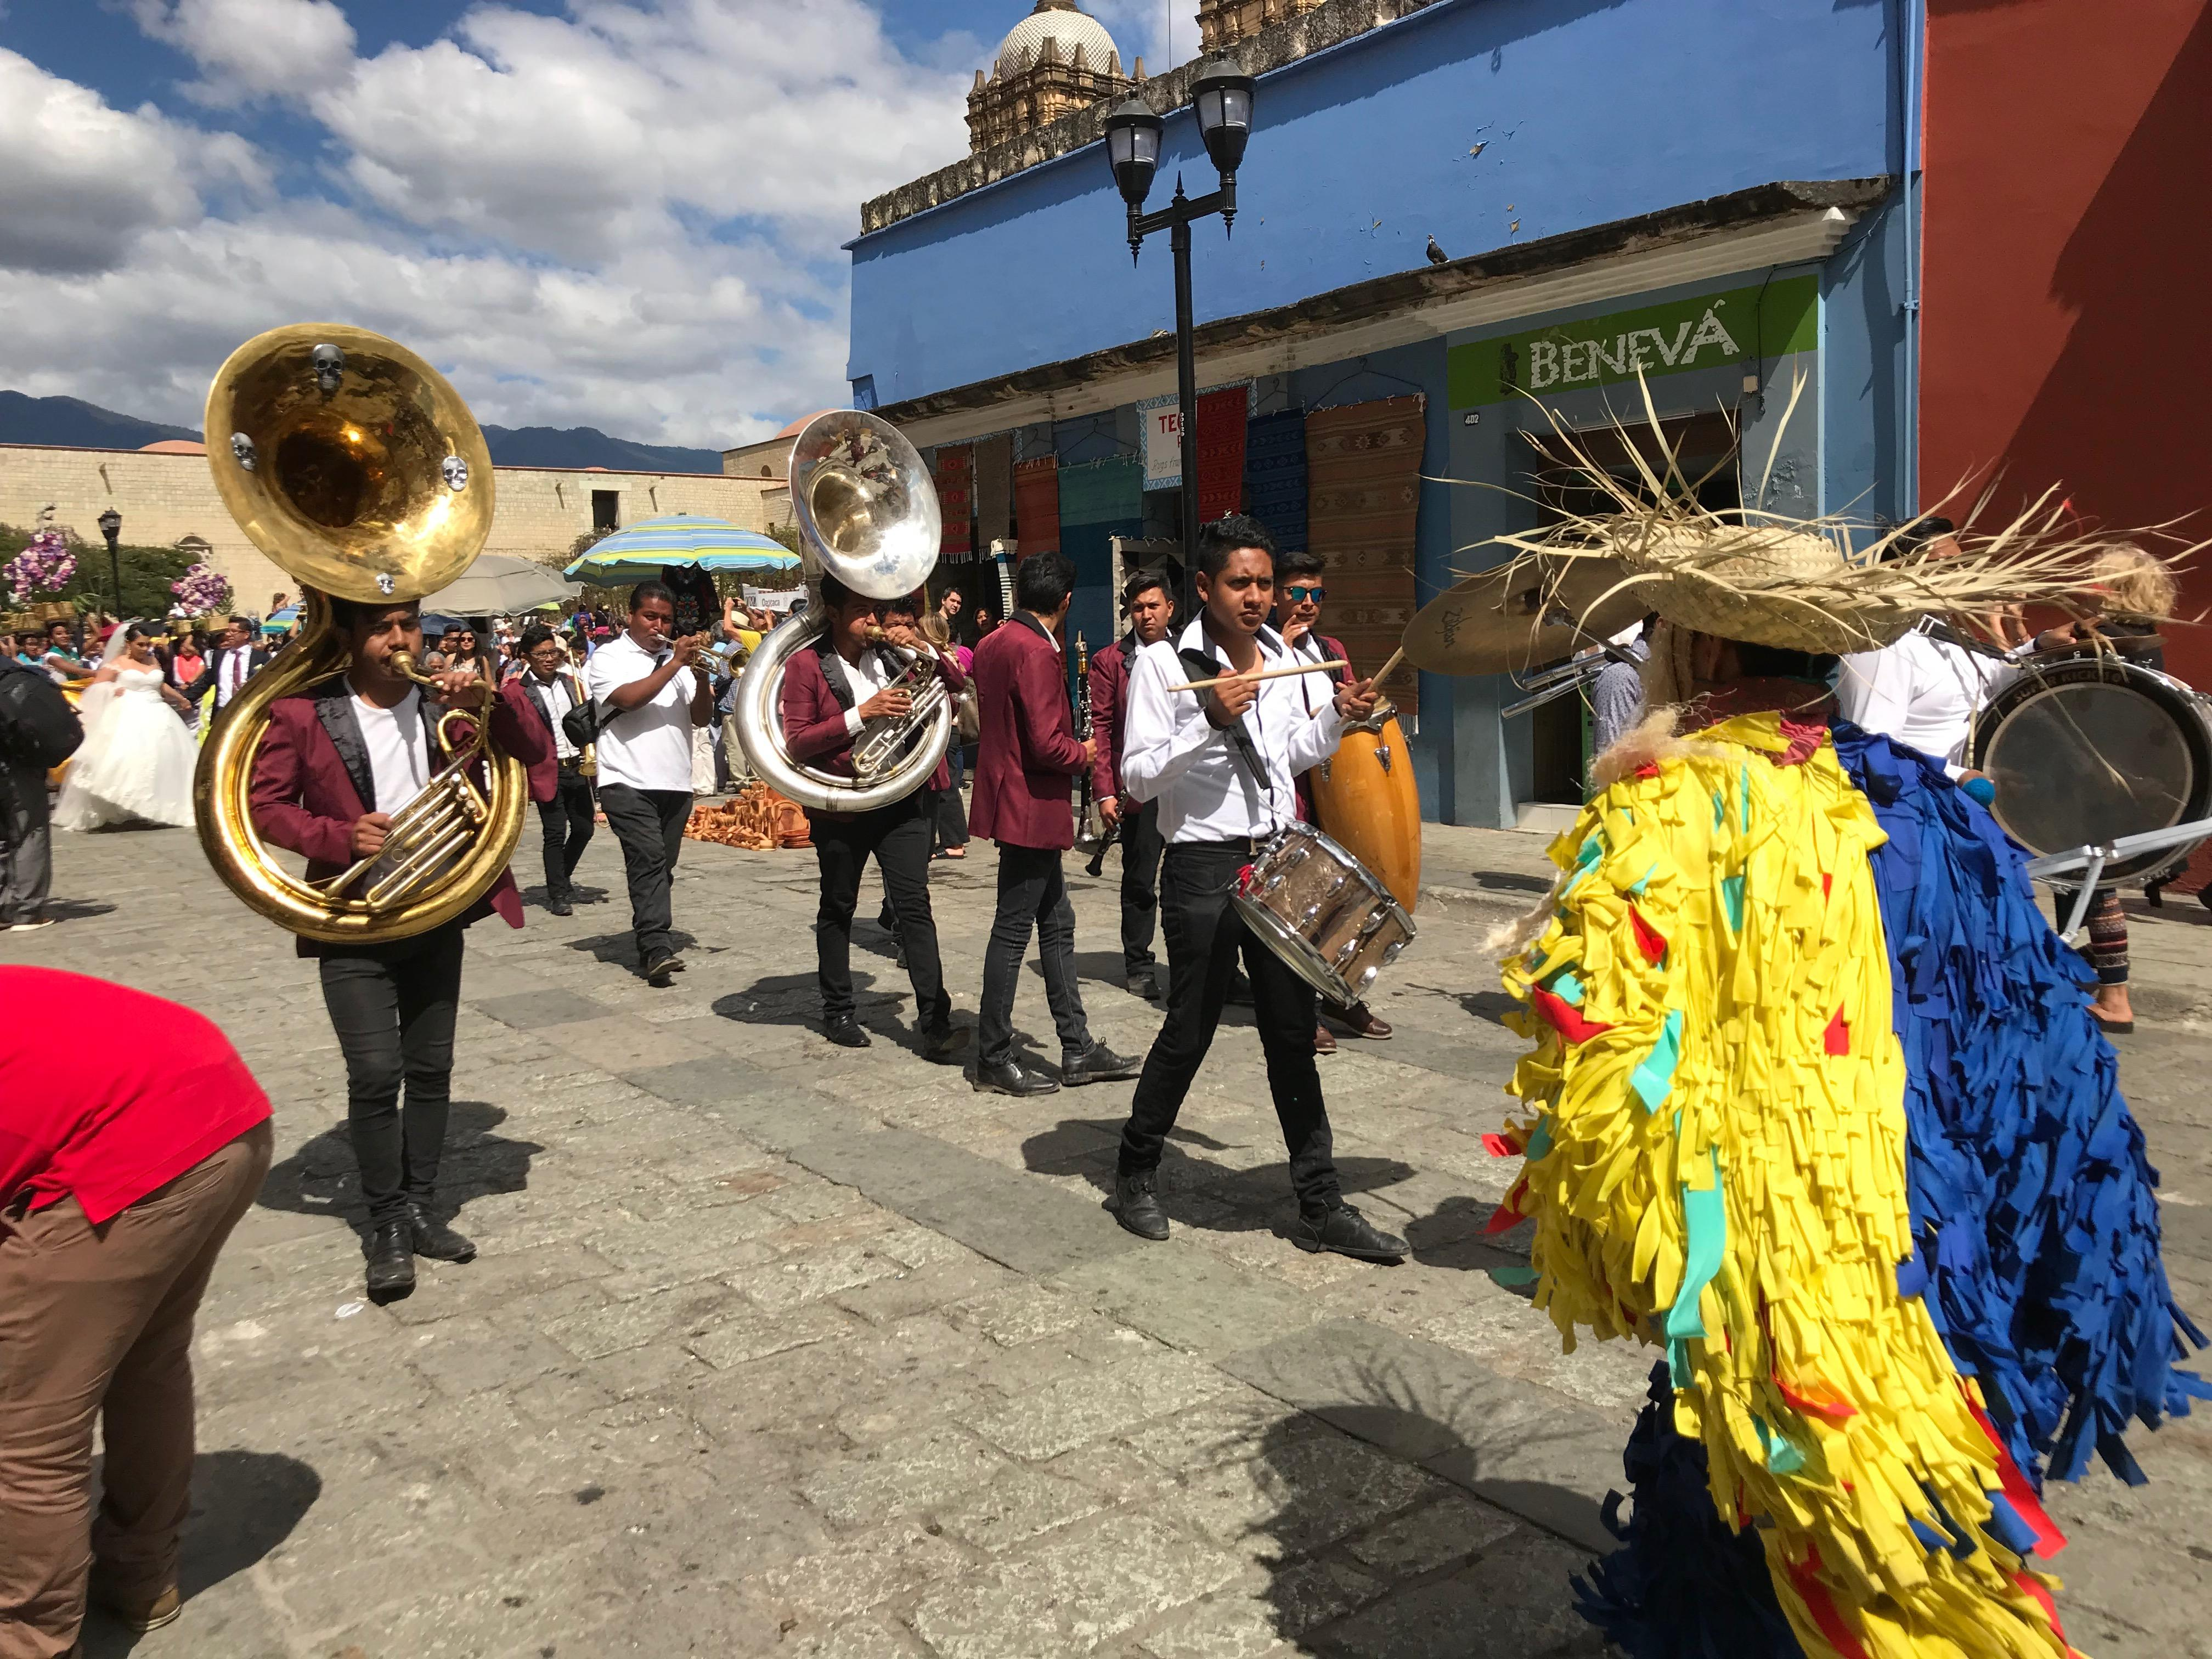 Dancers and musicians outside the Santo Domingo church near downtown Oaxaca, Mexico